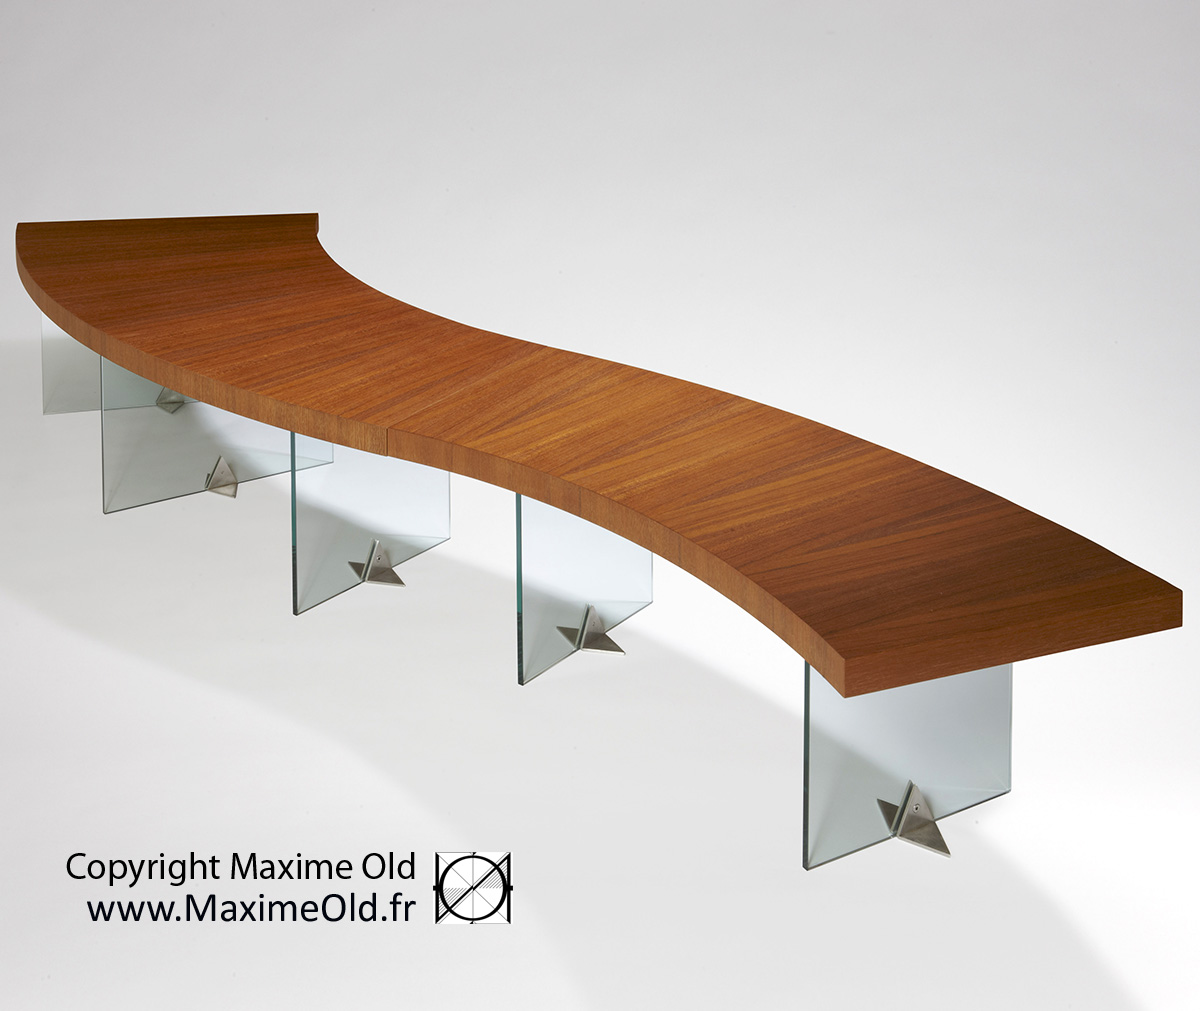 Tables Basses-d Appoint Maxime Old: Table Vague